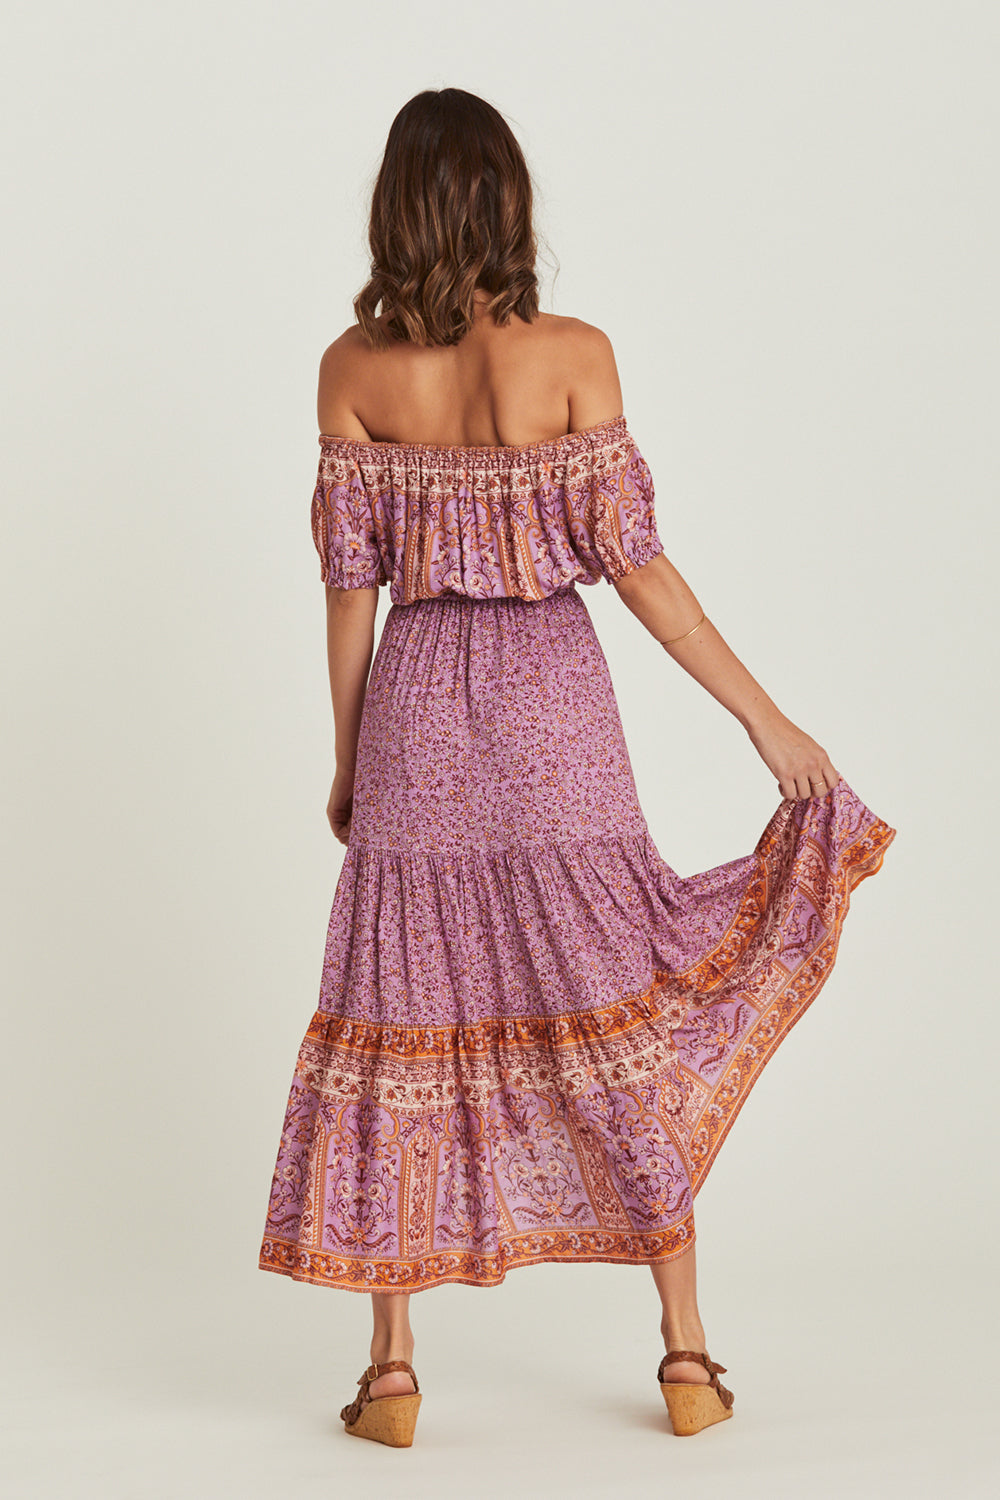 Island Sundress in Amethyst